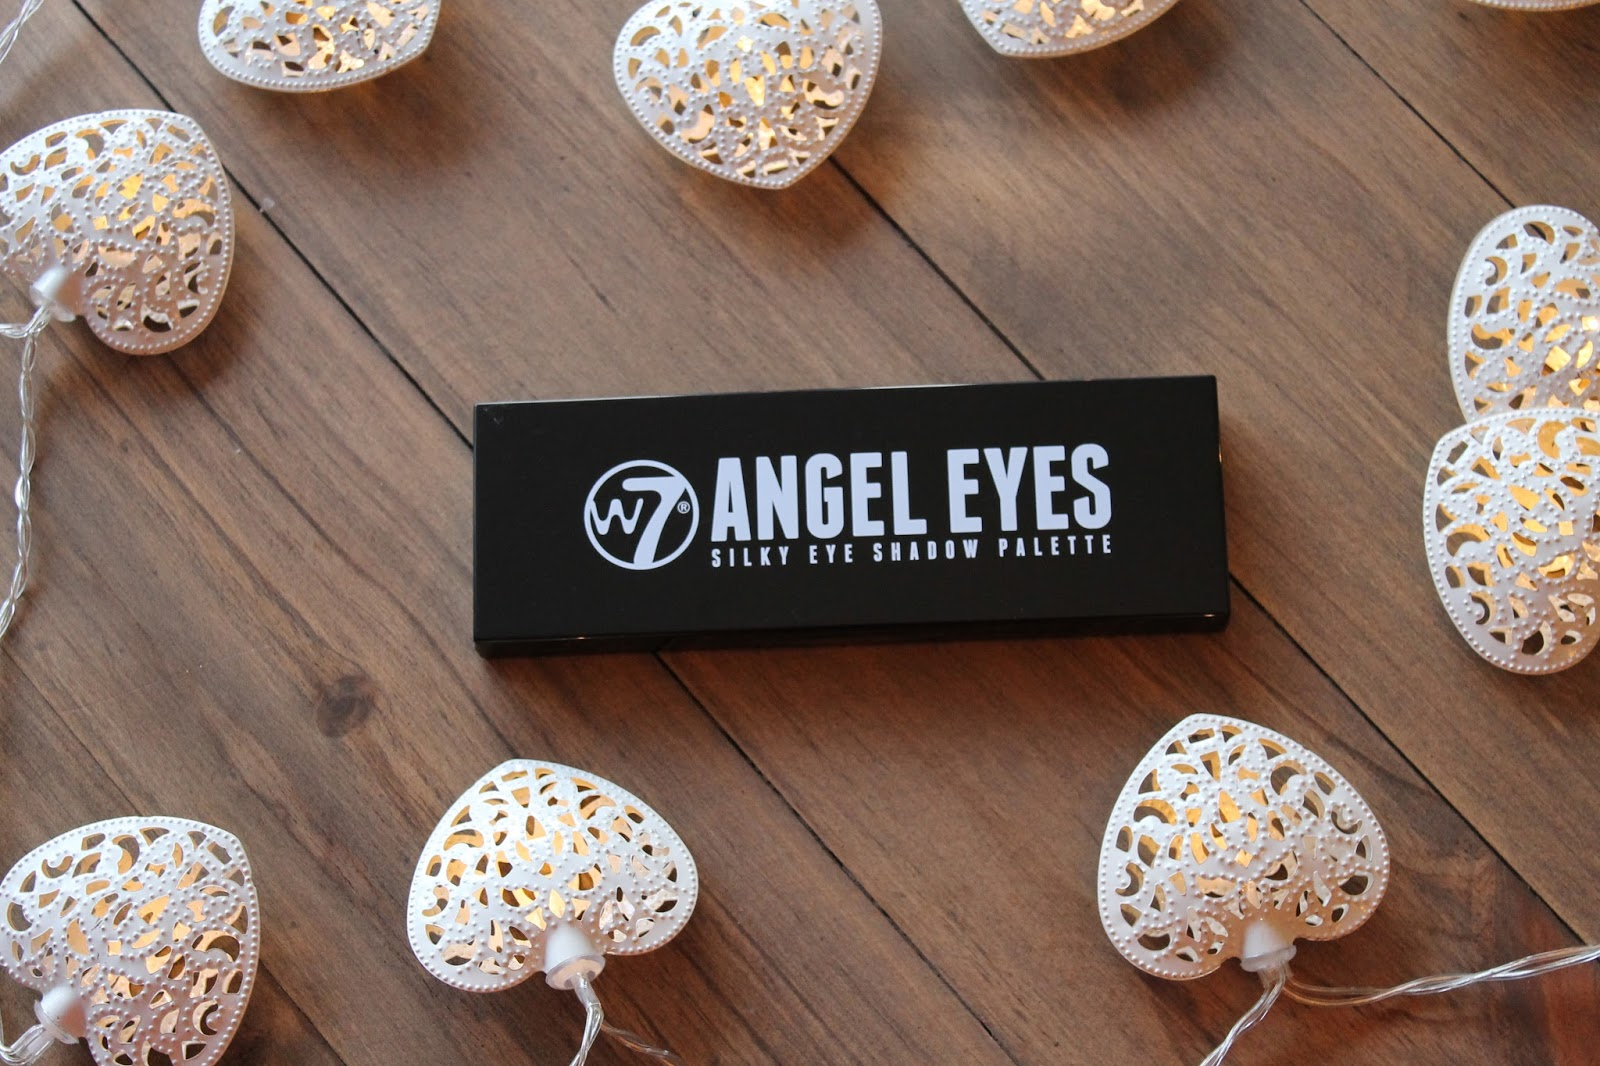 W7 Angel Eyes - Out on the Town